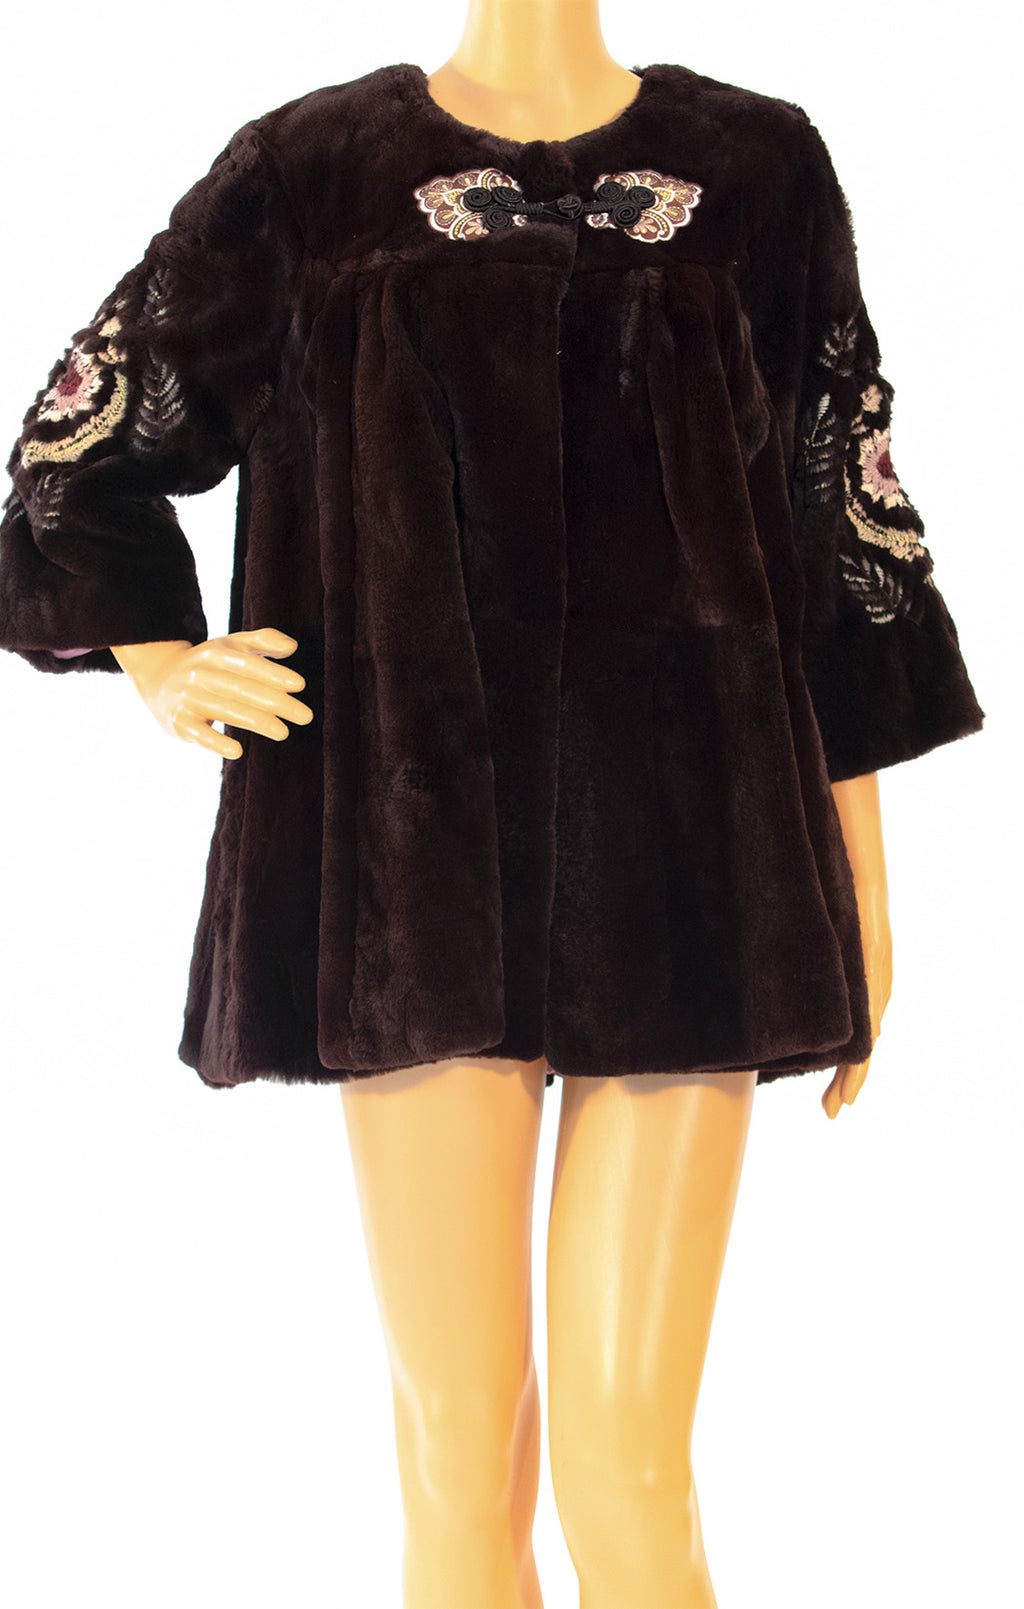 Front view of McGINN Fur jacket Size: Small